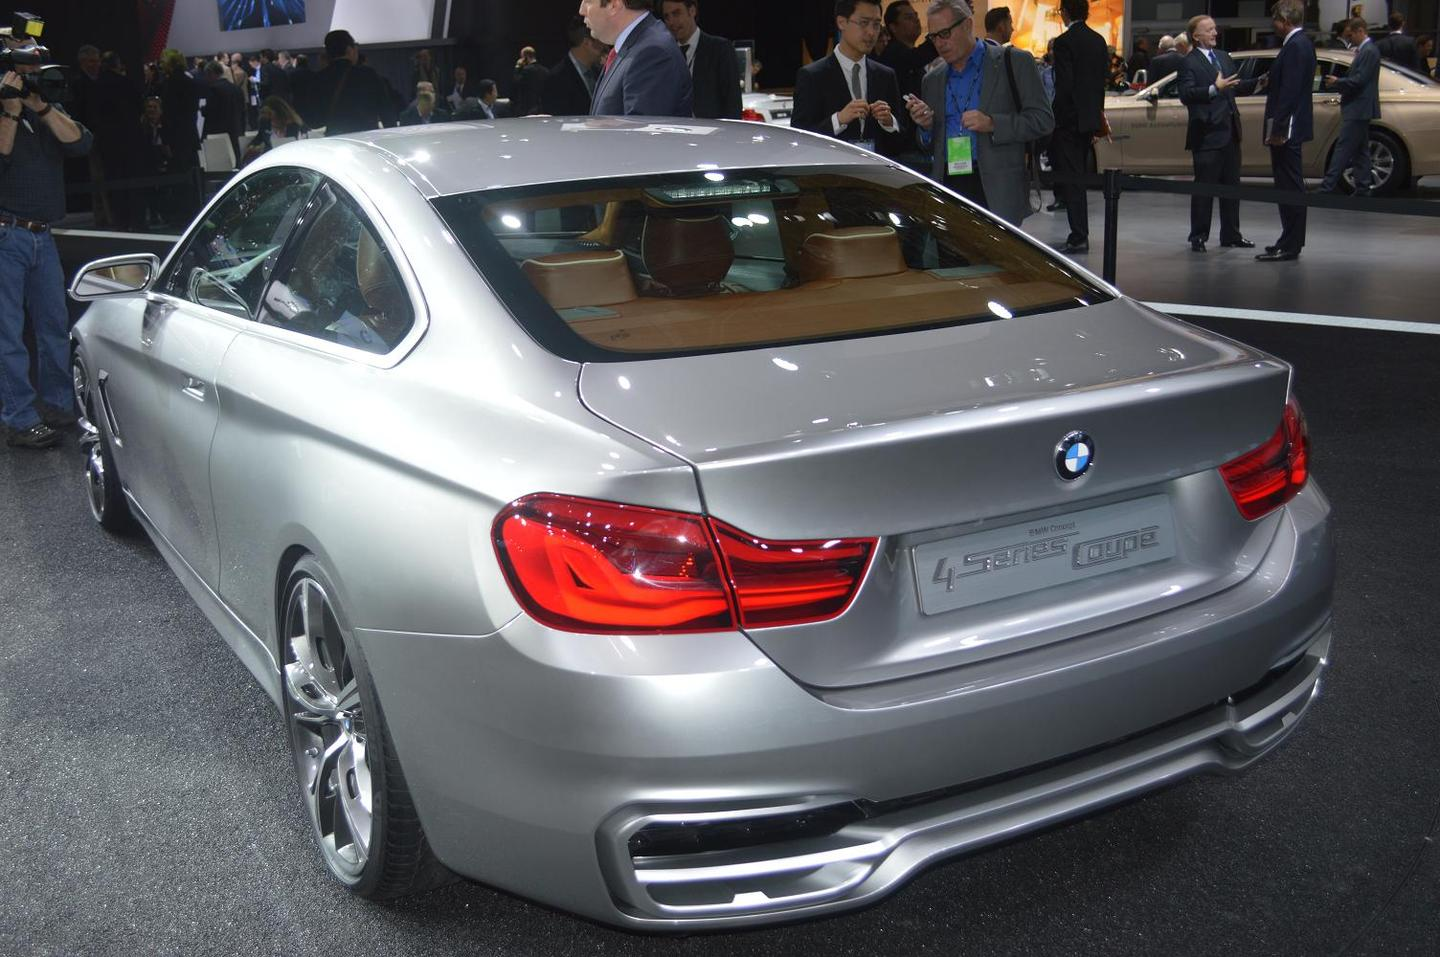 The BMW Concept Series 4 at the NAIAS Detroit